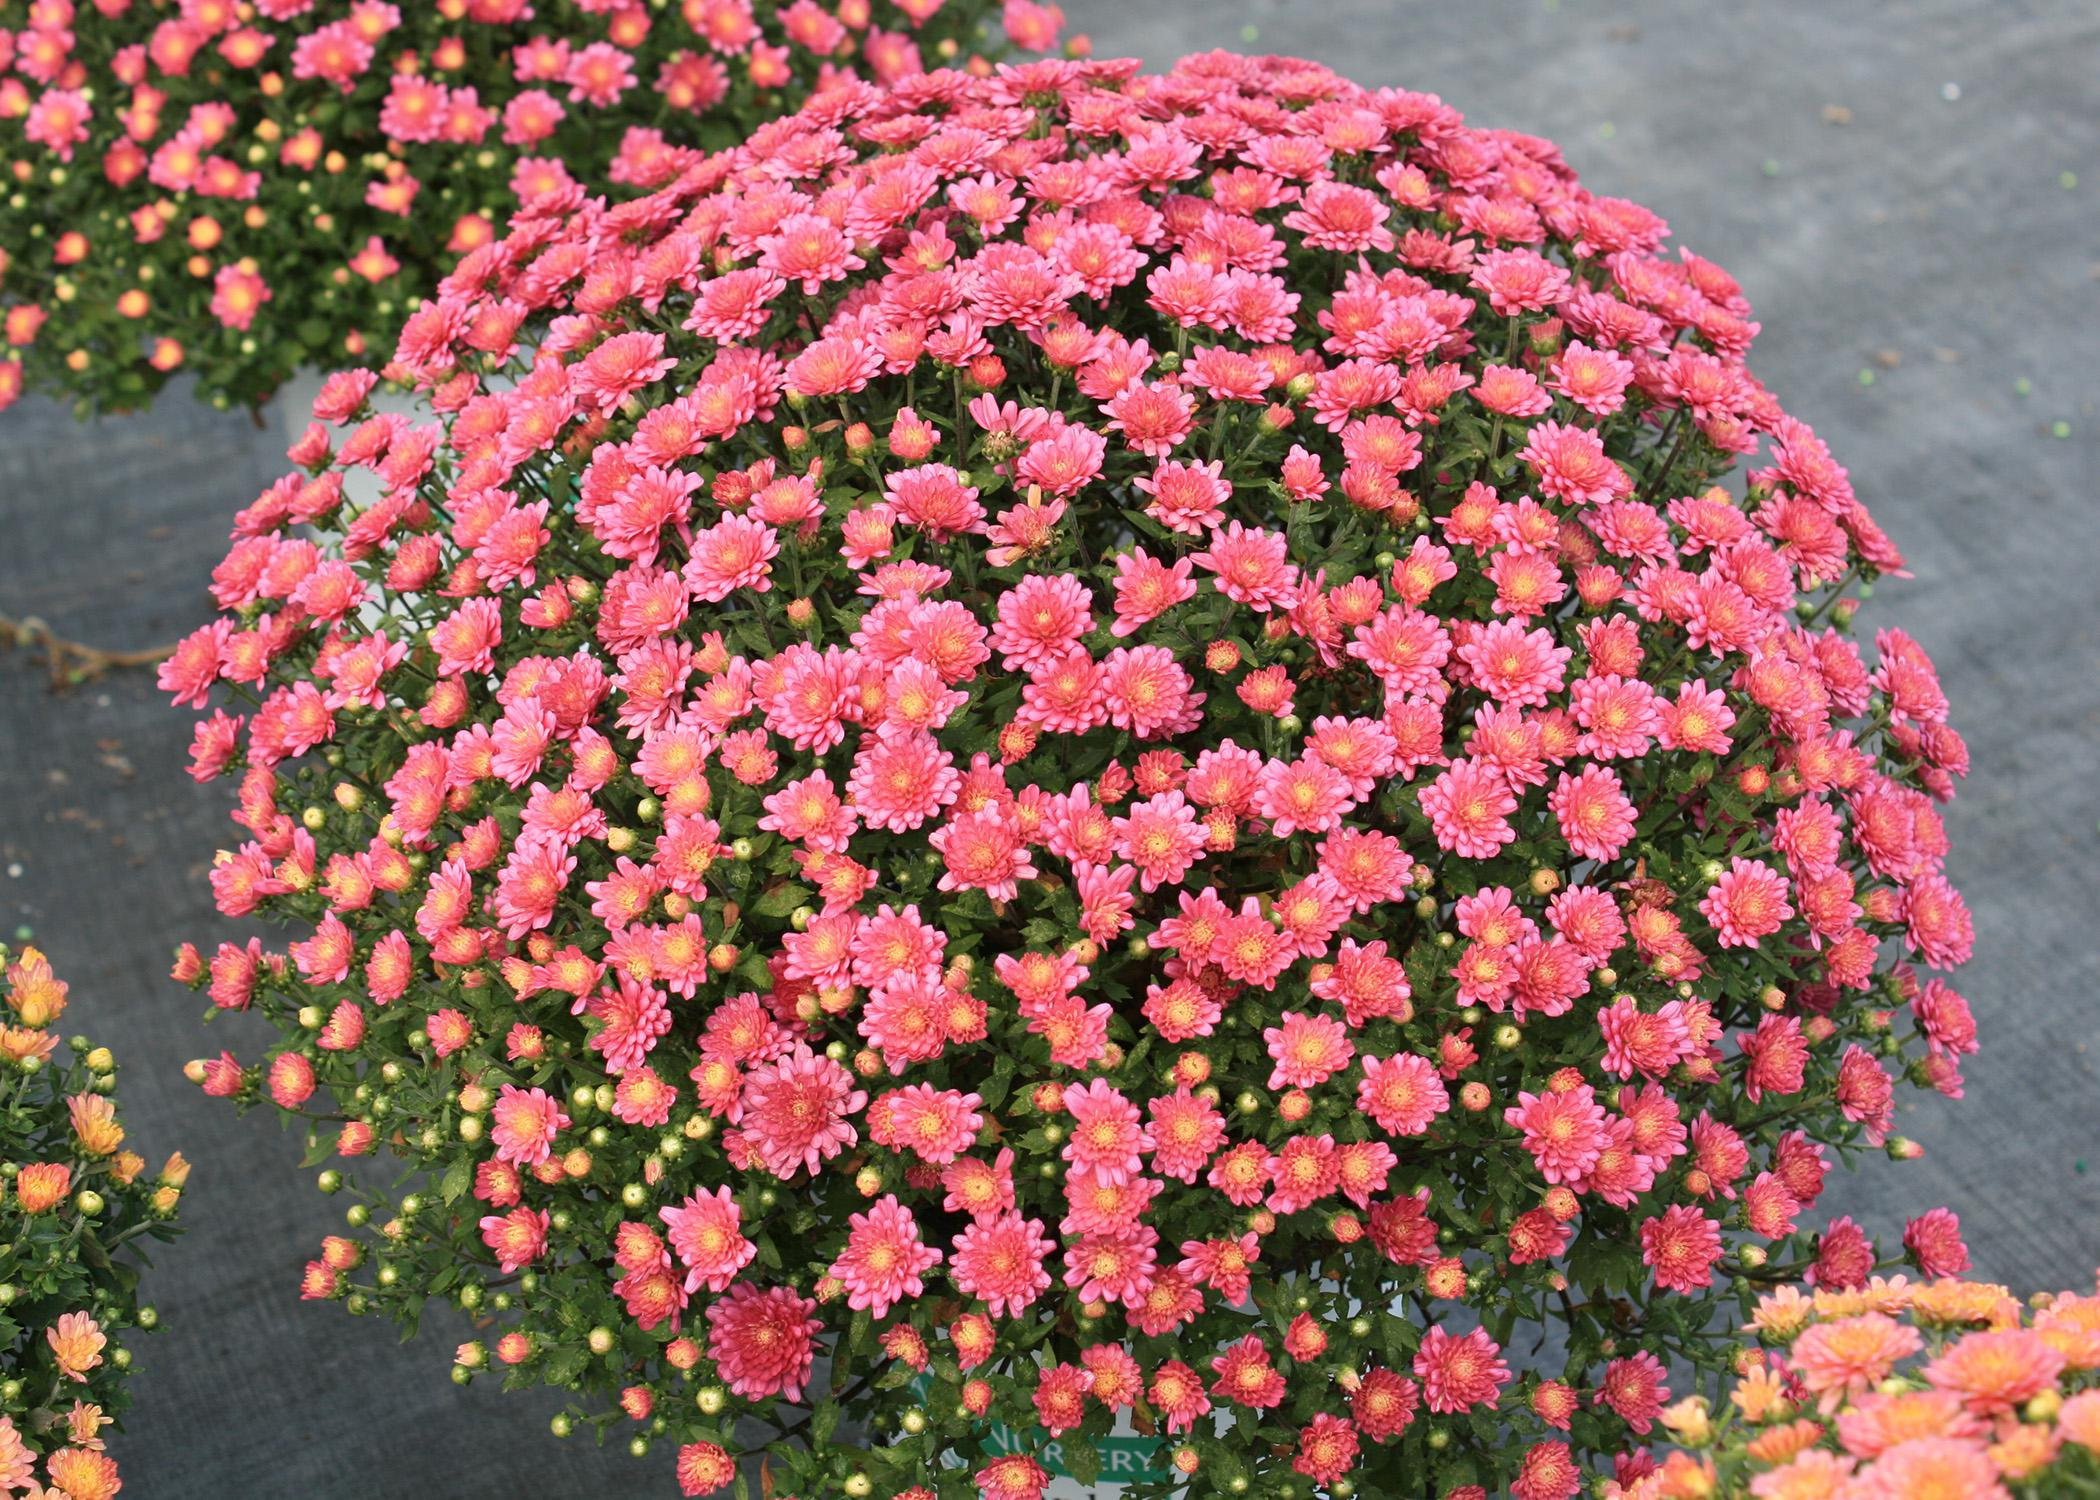 The many warm colors of mums fit in almost any home color scheme. They have an immediate impact with their plentiful blooms. (Photo by MSU Extension Service/Gary Bachman)